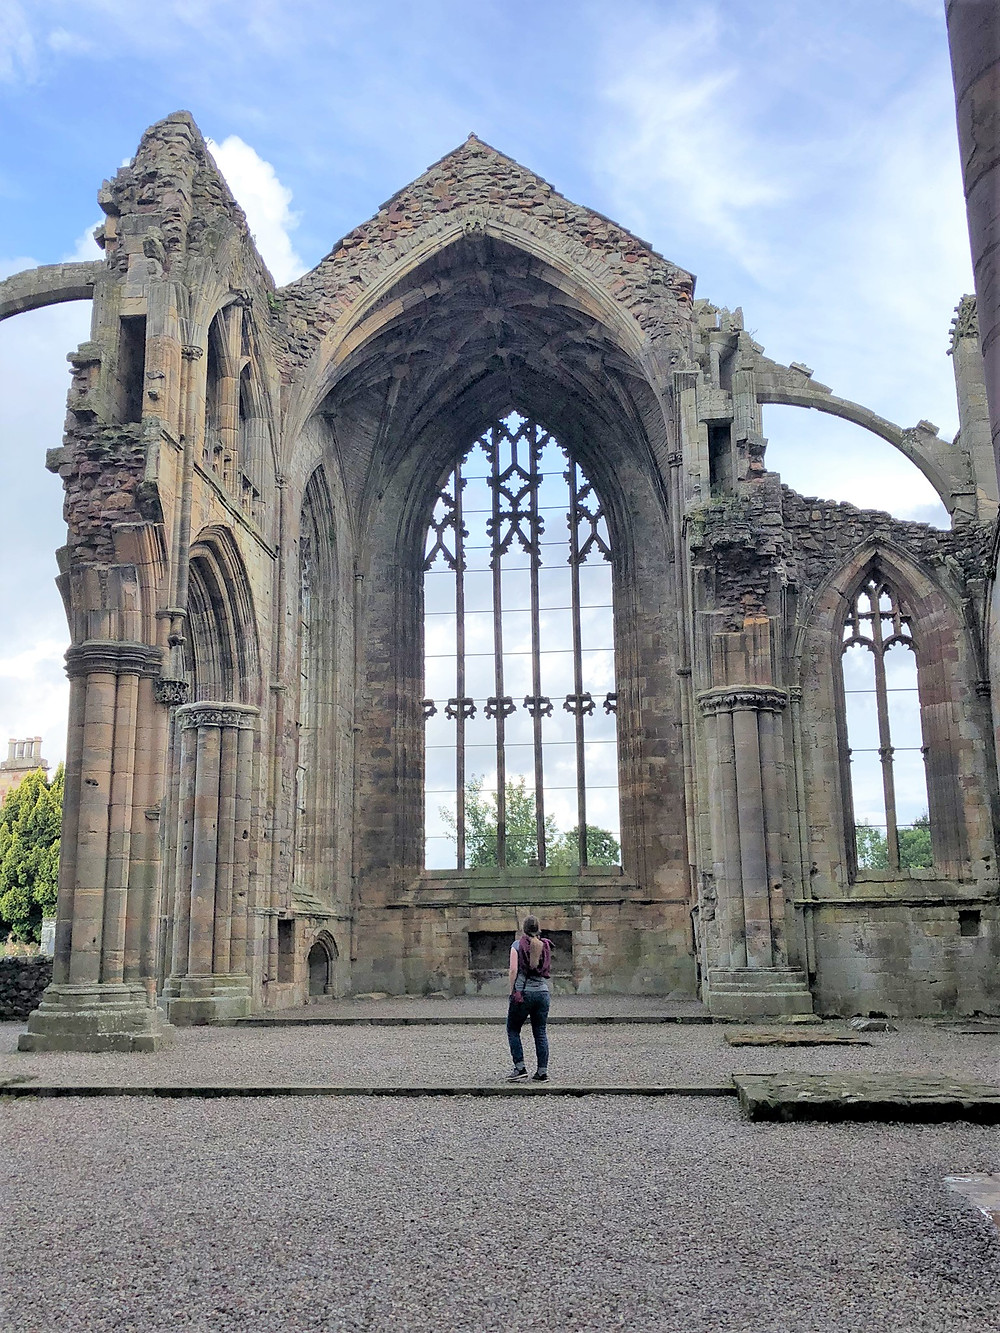 The presbytery at the east end of Melrose Abbey where the high altar once stood. The window tracery is almost completely intact